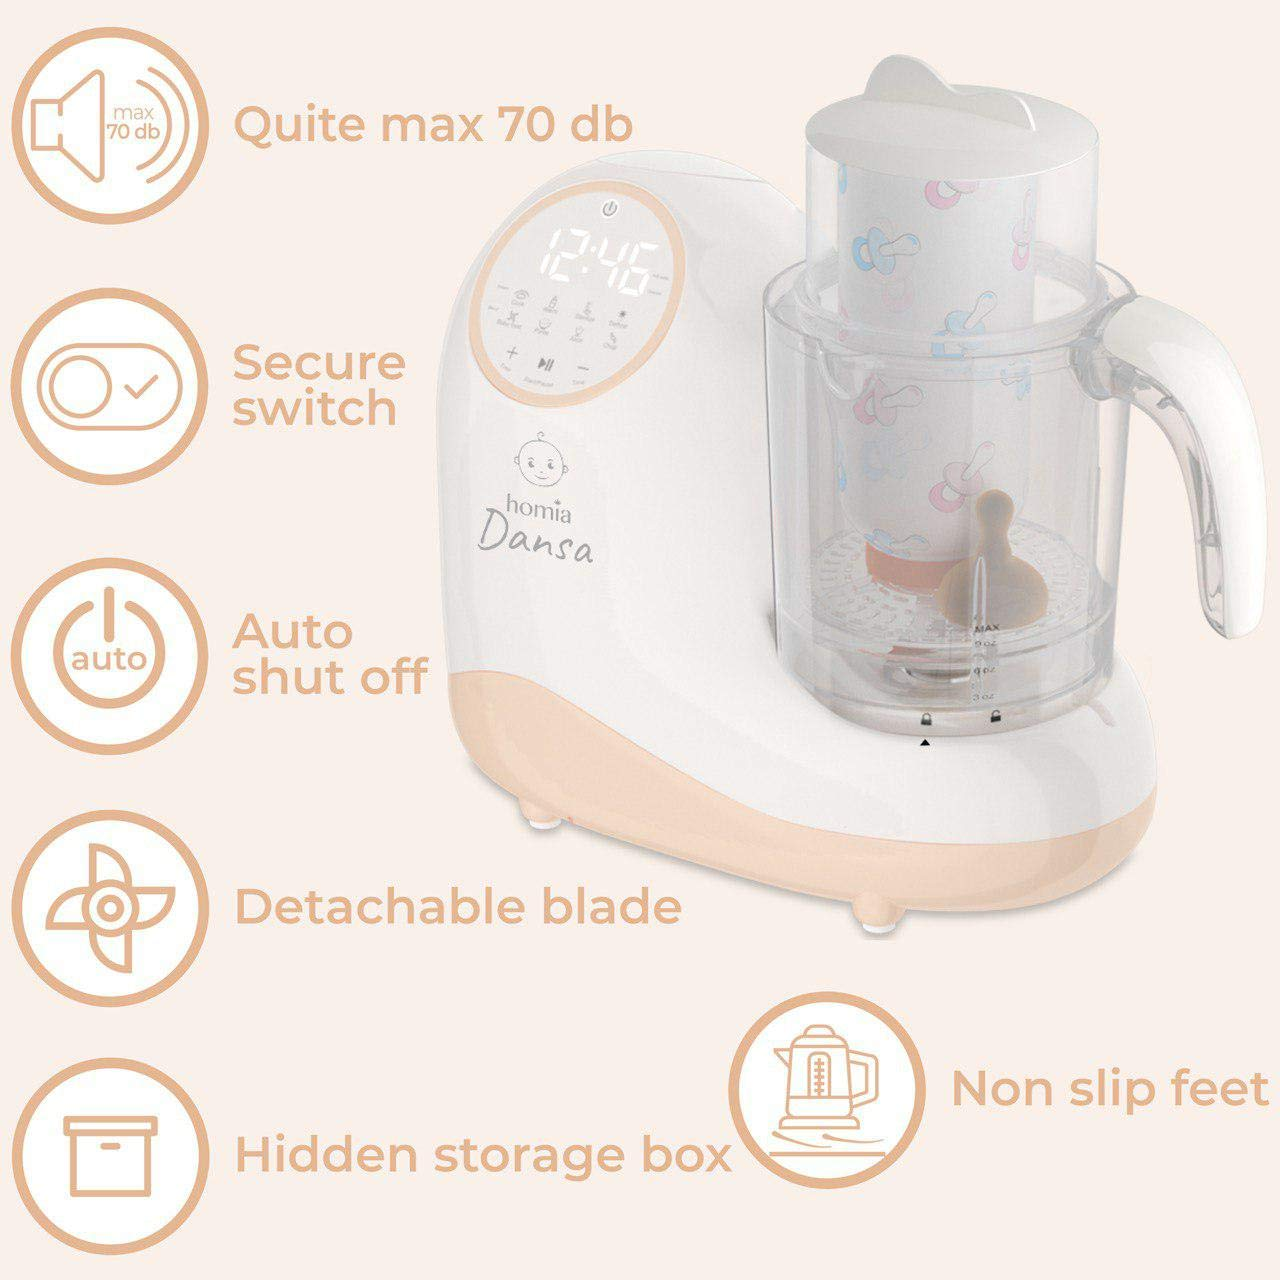 Baby Food Maker Chopper Grinder - Mills and Steamer 8 in 1 Processor for Toddlers - Steam, Blend, Chop, Disinfect, Clean, 20 Oz Tritan Stirring Cup, Touch Control Panel, Auto Shut-Off, 110V Only by homia (Image #10)